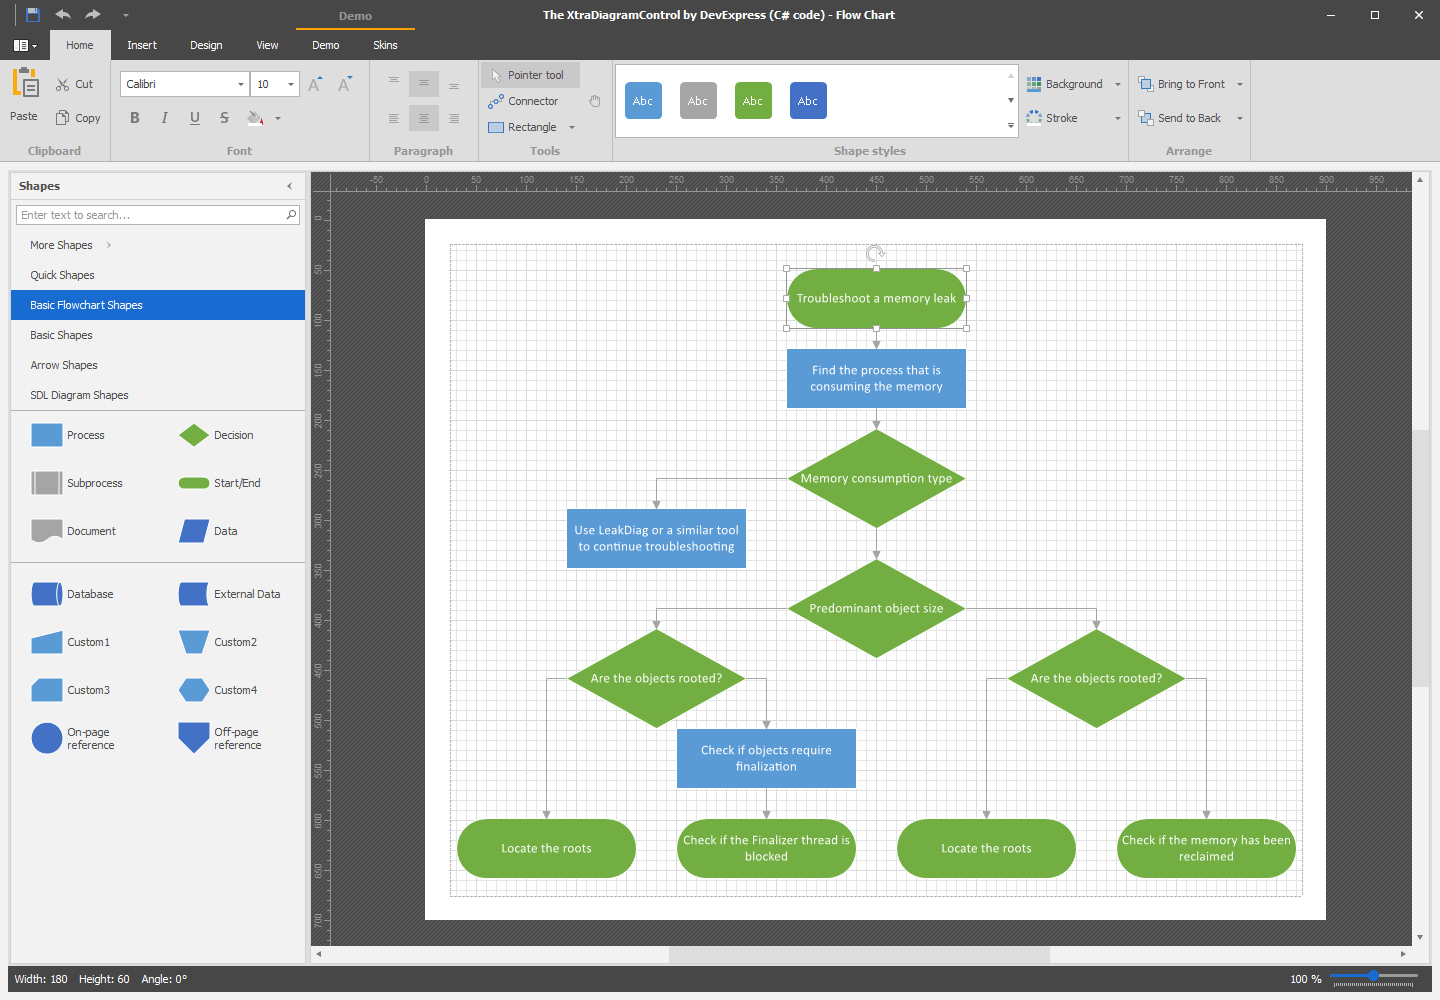 visual studio view class diagram electron dot of iodine winforms flowchart orgchart control devexpress